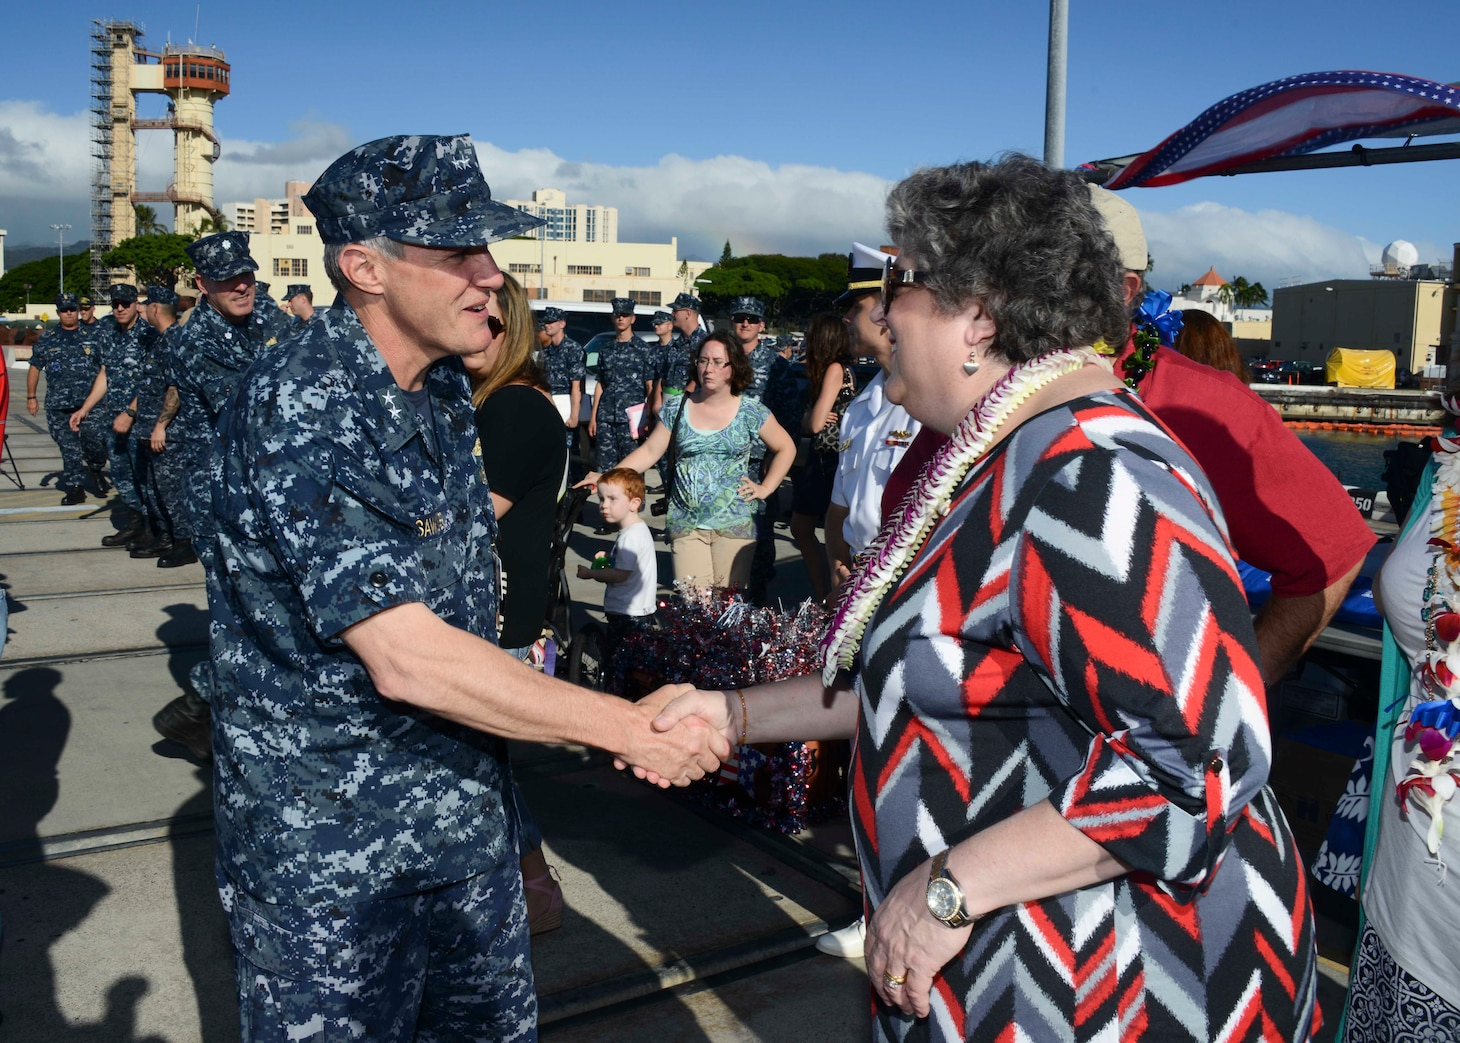 PEARL HARBOR (Nov. 25, 2014) Rear Adm. Phil Sawyer, commander of Submarine Force, U.S. Pacific Fleet, greets Allison Stiller, deputy assistant secretary of the Navy for ship programs and ship sponsor of the Virginia-class attack submarine USS Mississippi (SSN 782), during an arrival ceremony as Mississippi is welcomed to its new homeport at Joint Base Pearl Harbor-Hickam. Mississippi is the 4th Virginia-class submarine to be home ported in Pearl Harbor, and one of 18 attack submarines permanently homeported at the historic base. (U.S. Navy photo by Mass Communication Specialist 1st Class Steven Khor/Released)